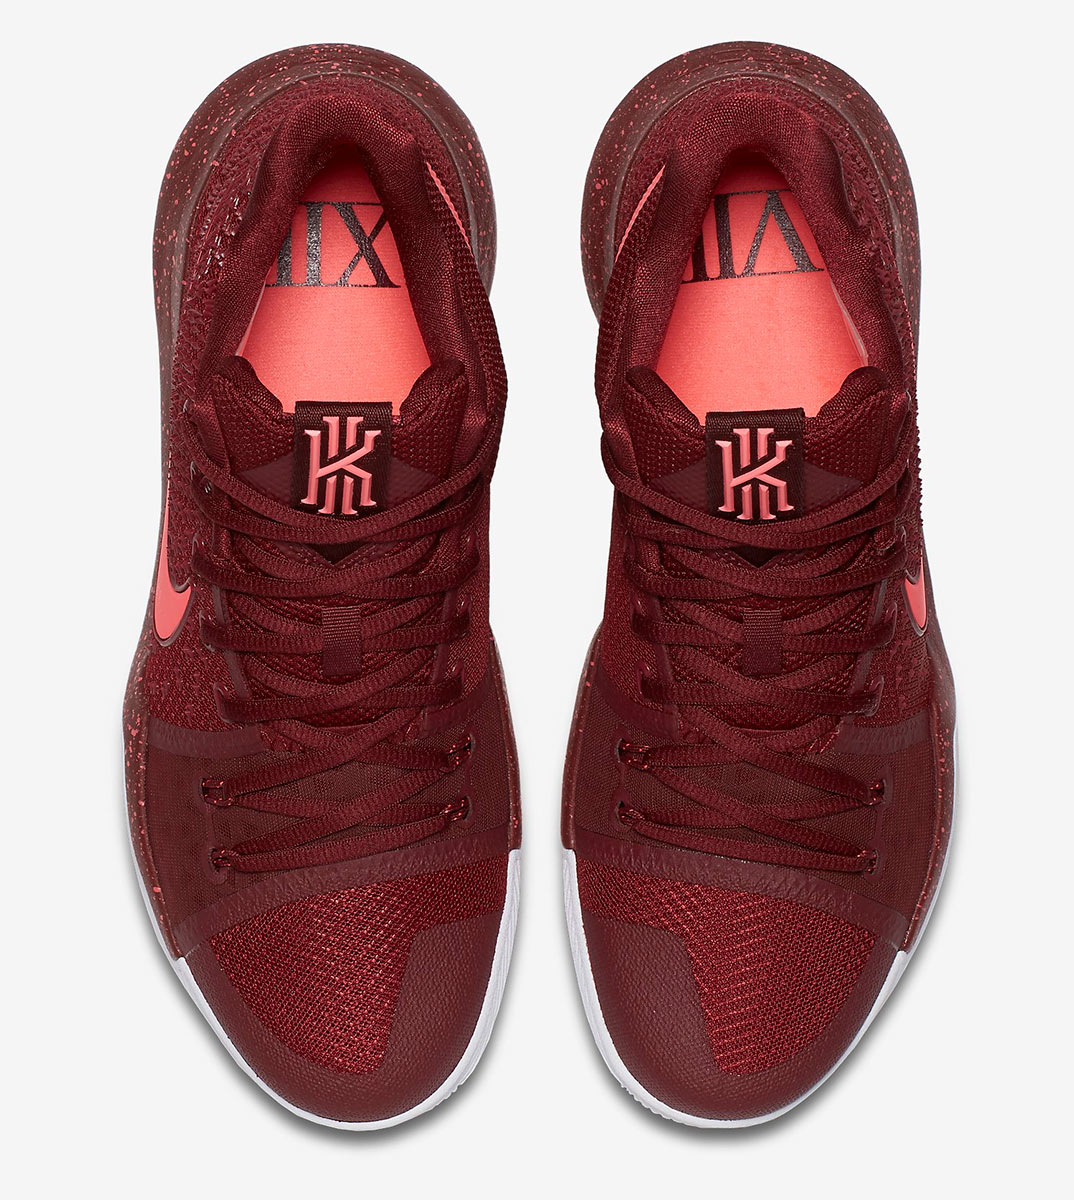 nike kyrie irving shoes coupon